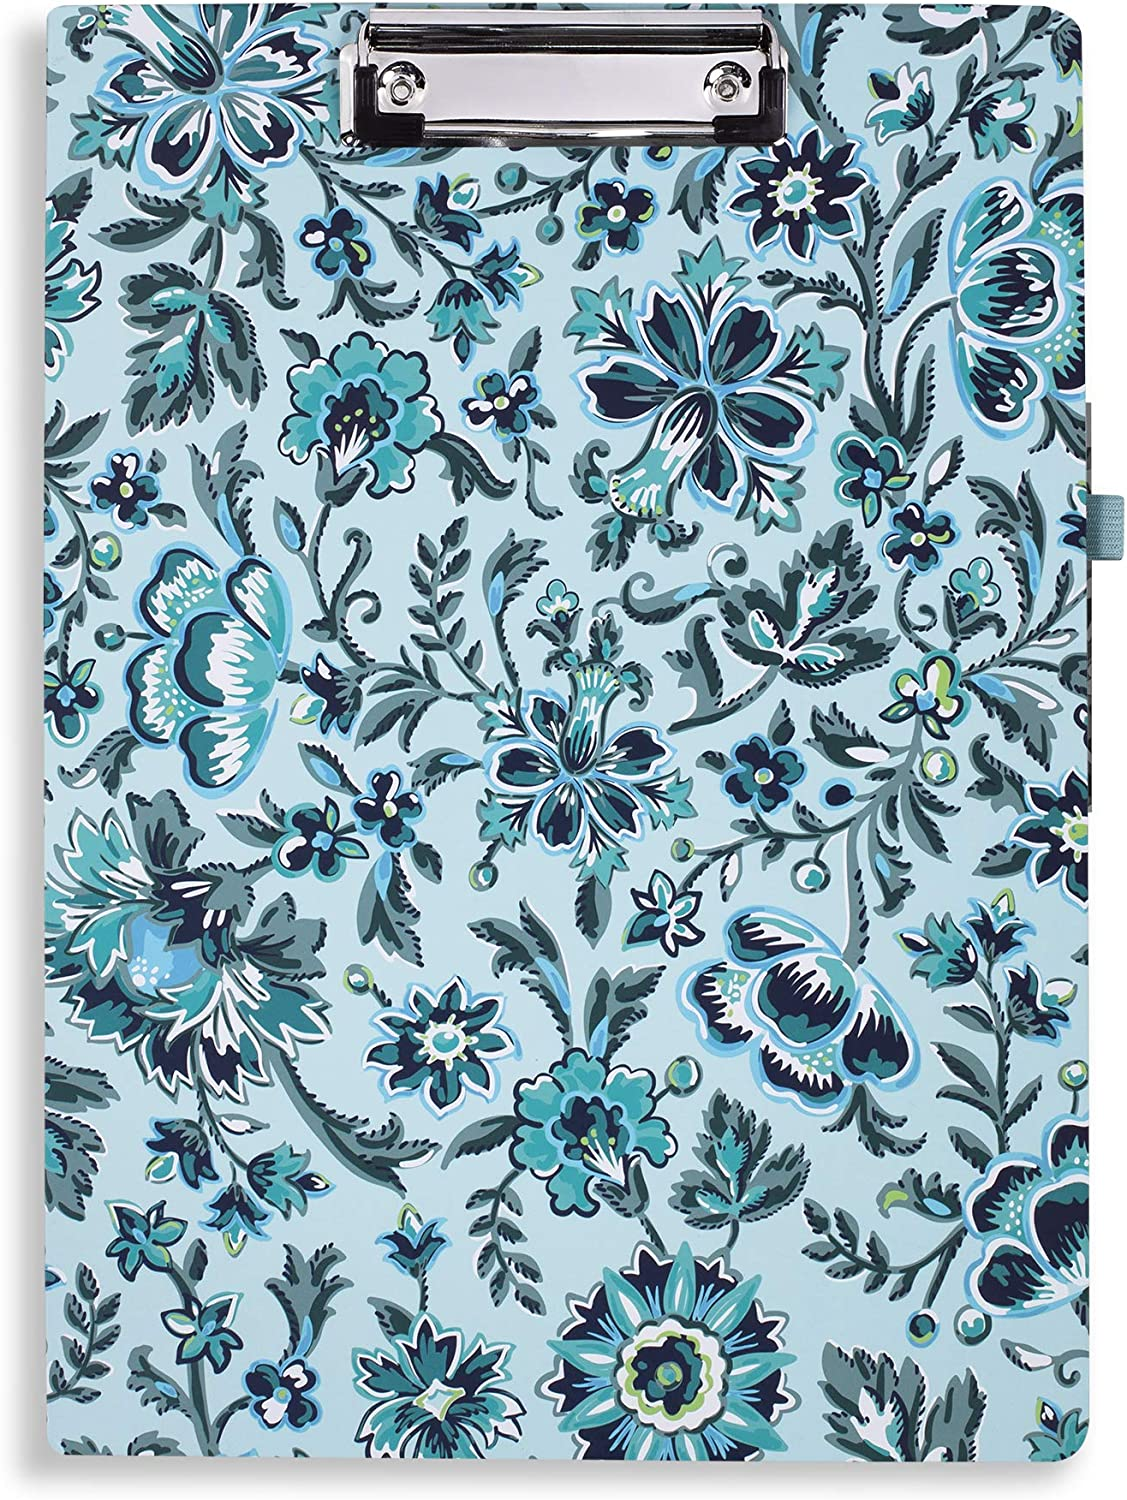 Vera Bradley Women's Blue Floral Clipboard Folio with Refillable Lined Notepad, Interior Pocket, and Pen Loop, Cloud Vine